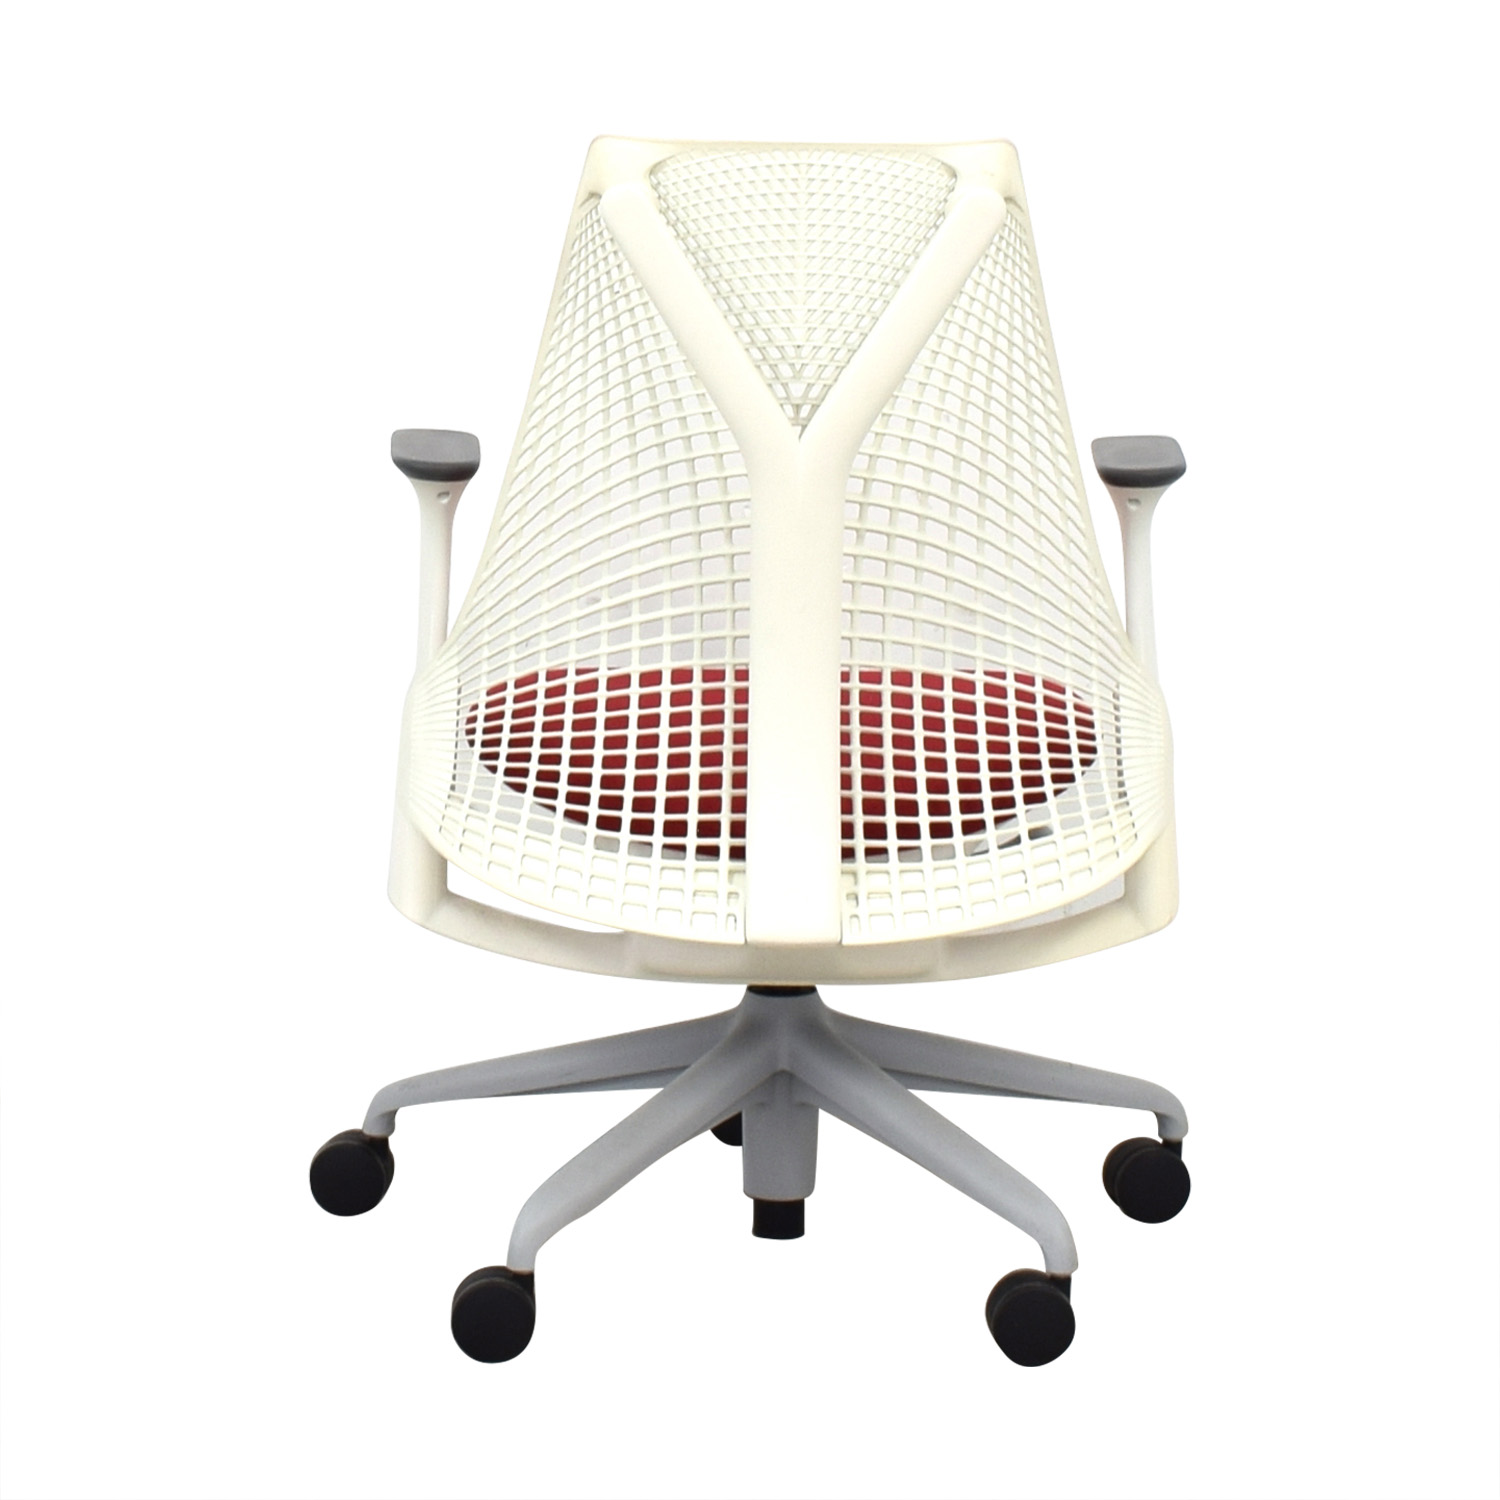 48 Off Herman Miller Herman Miller Sayl Office Chair Chairs